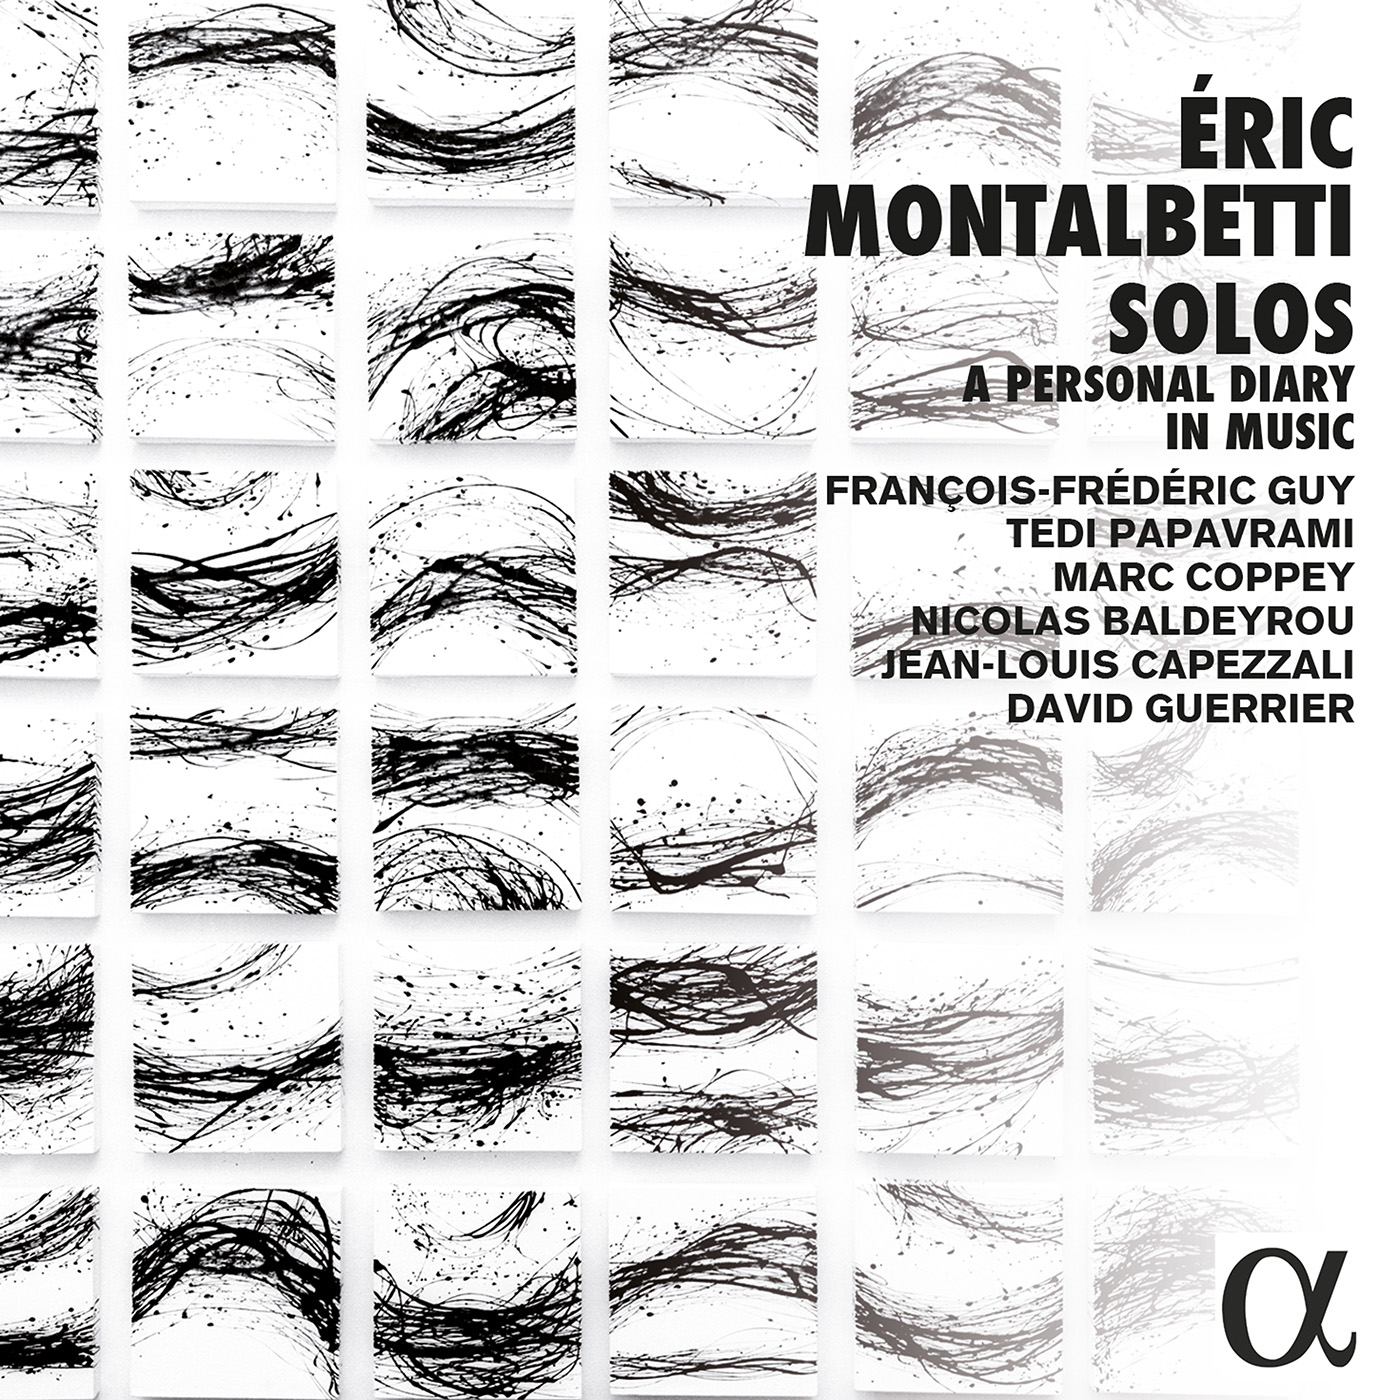 Éric Montalbetti: Solos – A Personal Diary in Music